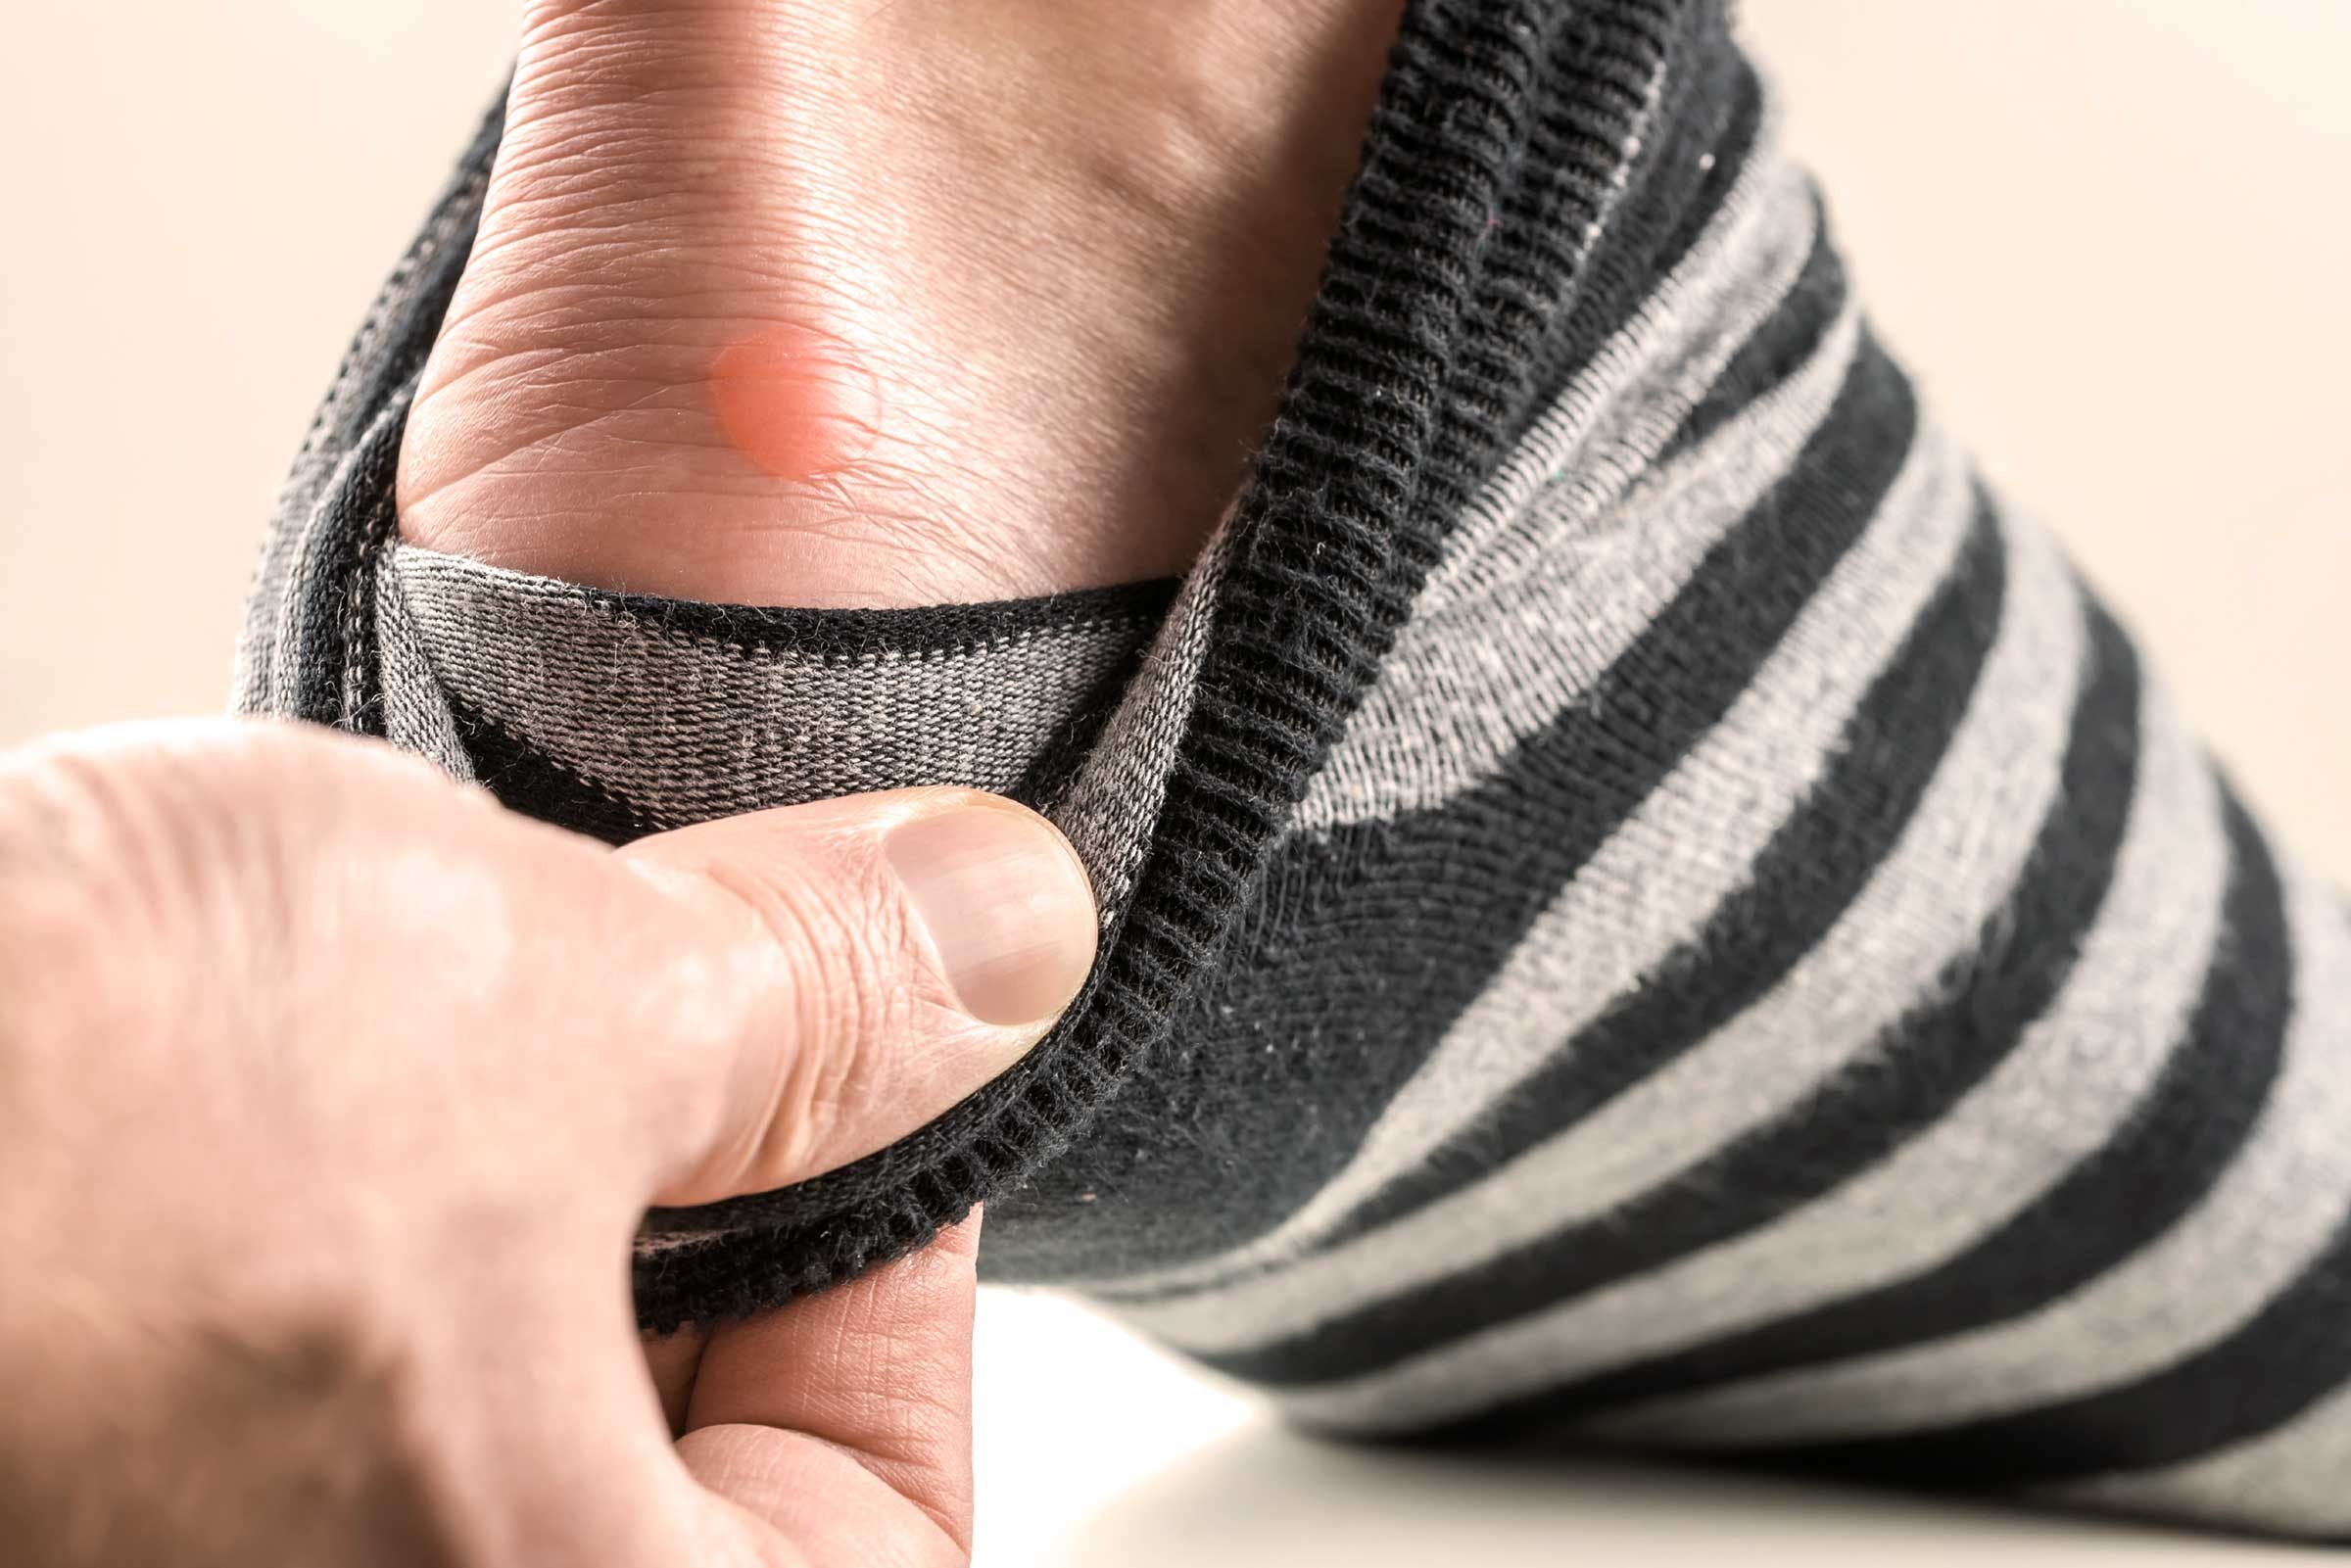 How To Prevent Blisters When Wearing Shoes Without Socks